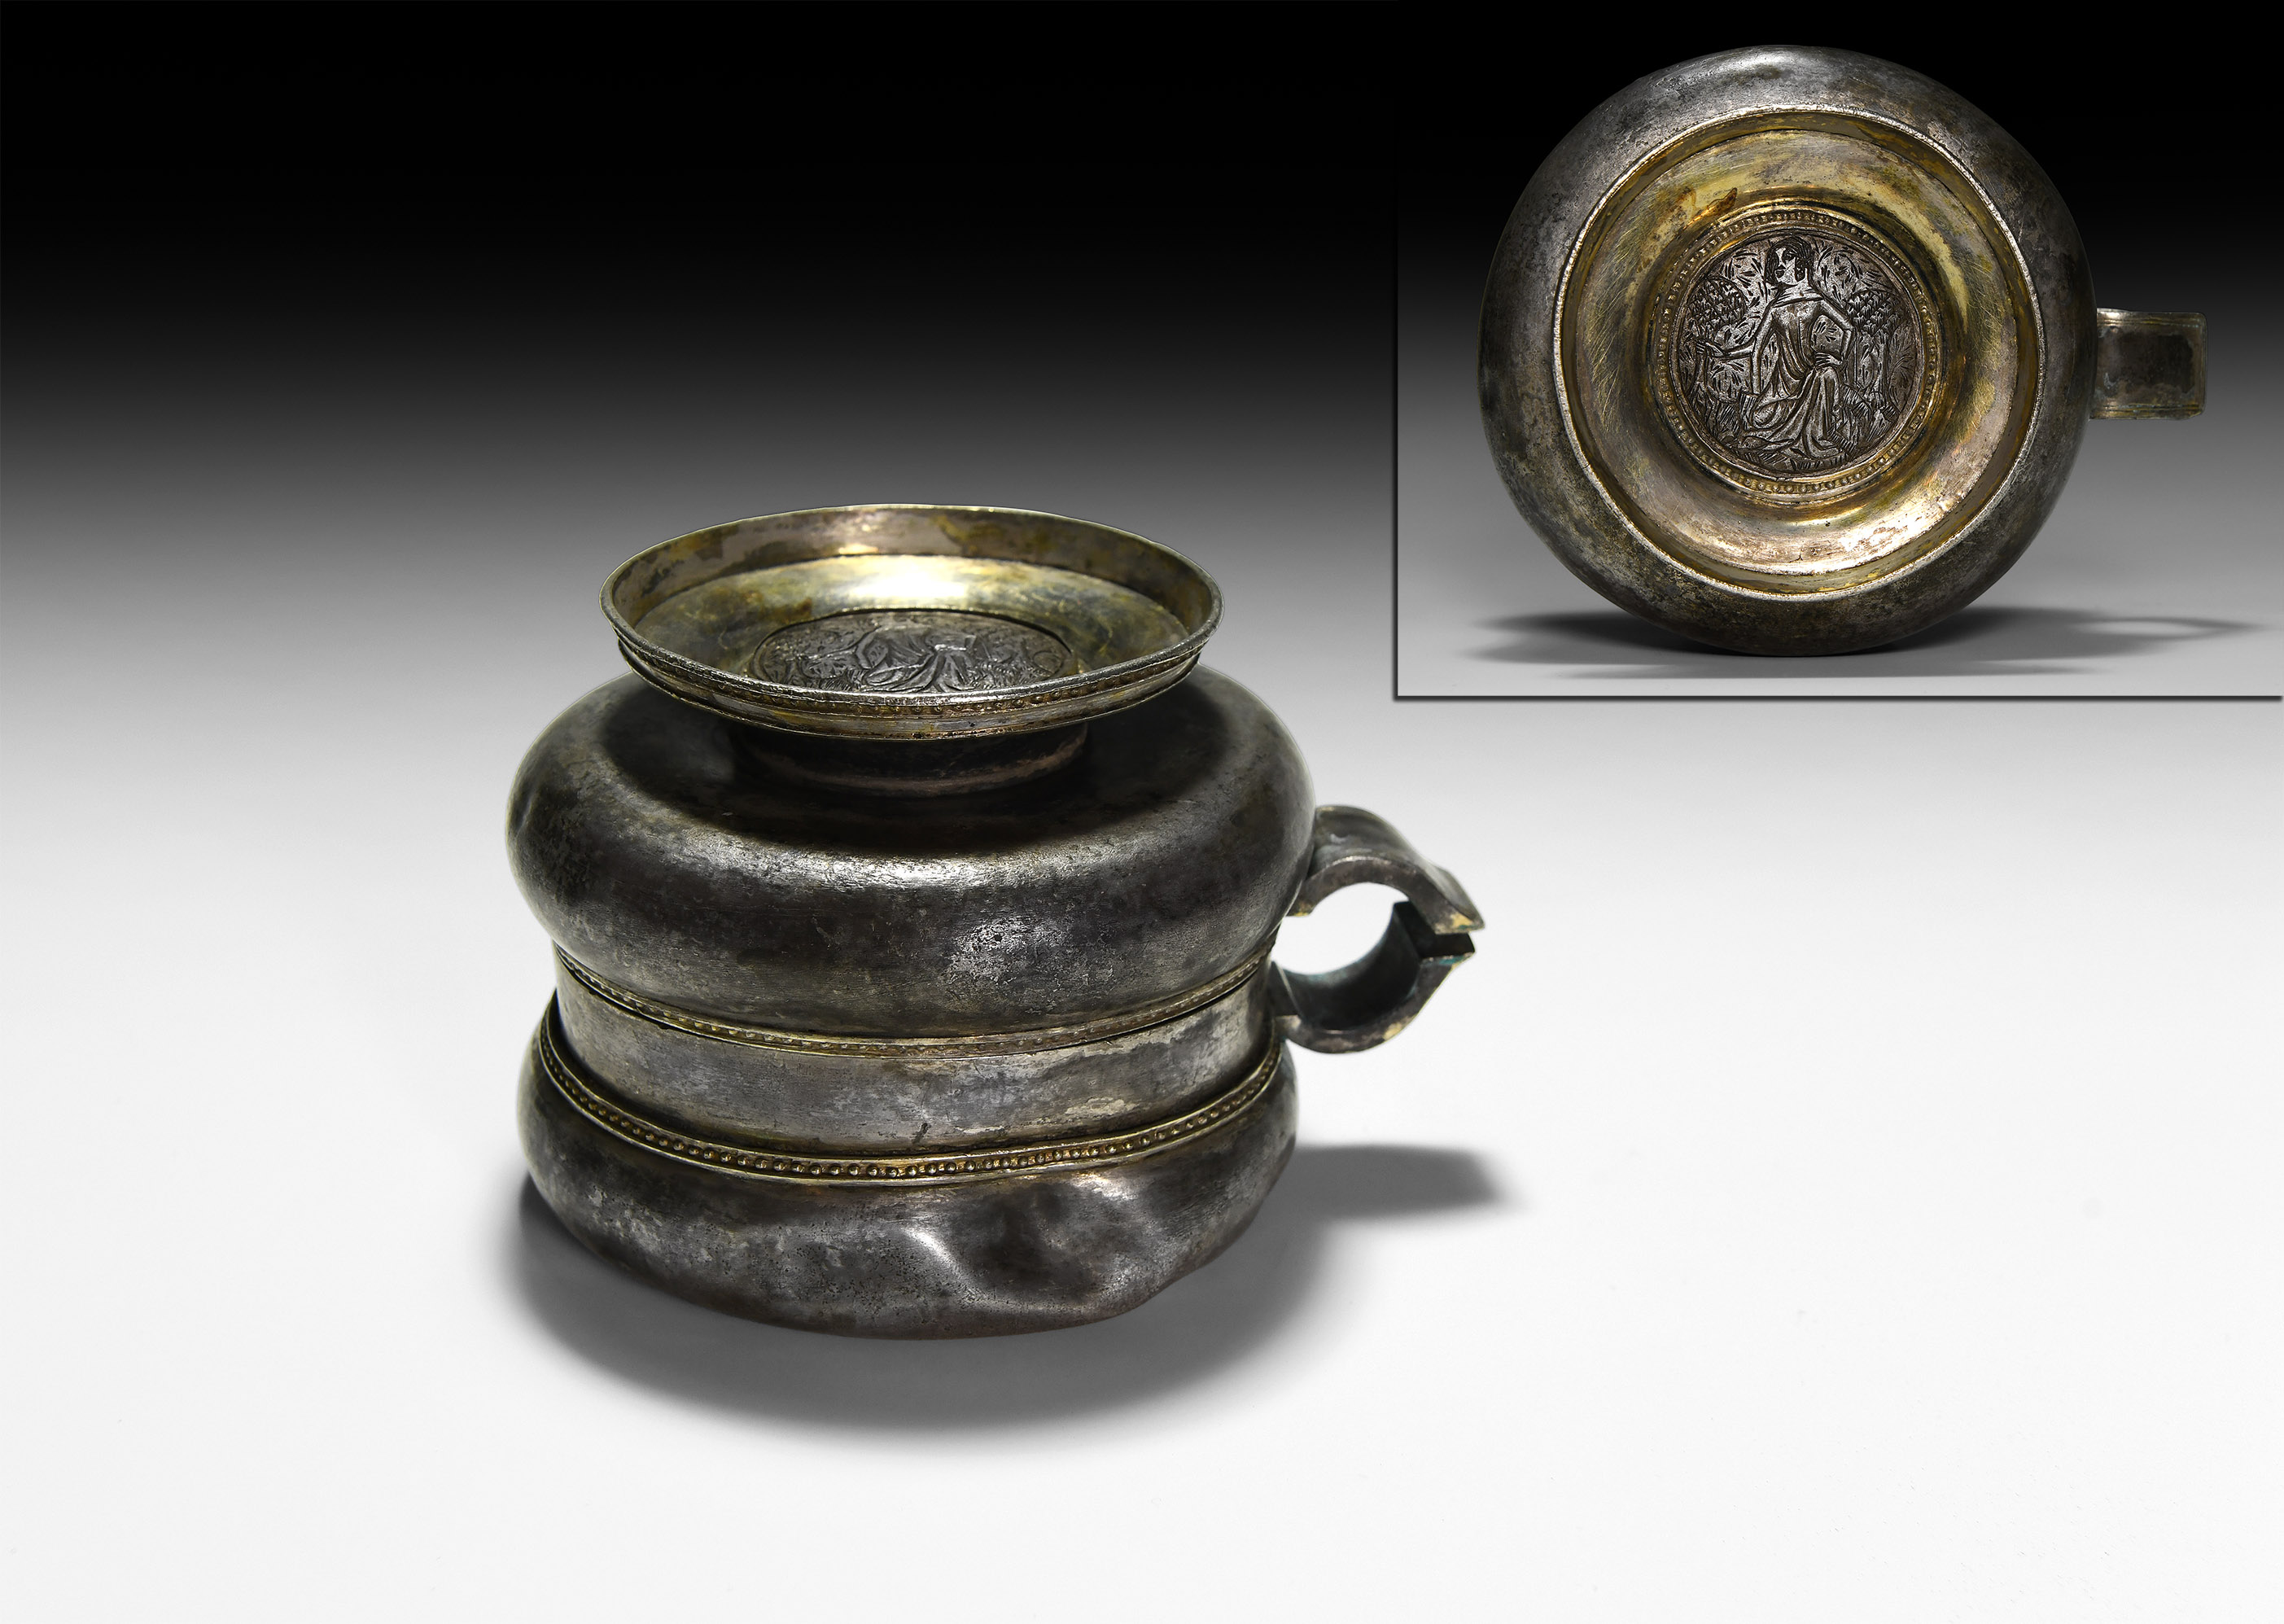 An Important Medieval Parcel-Gilt Loving Cup with Engraved Roundel